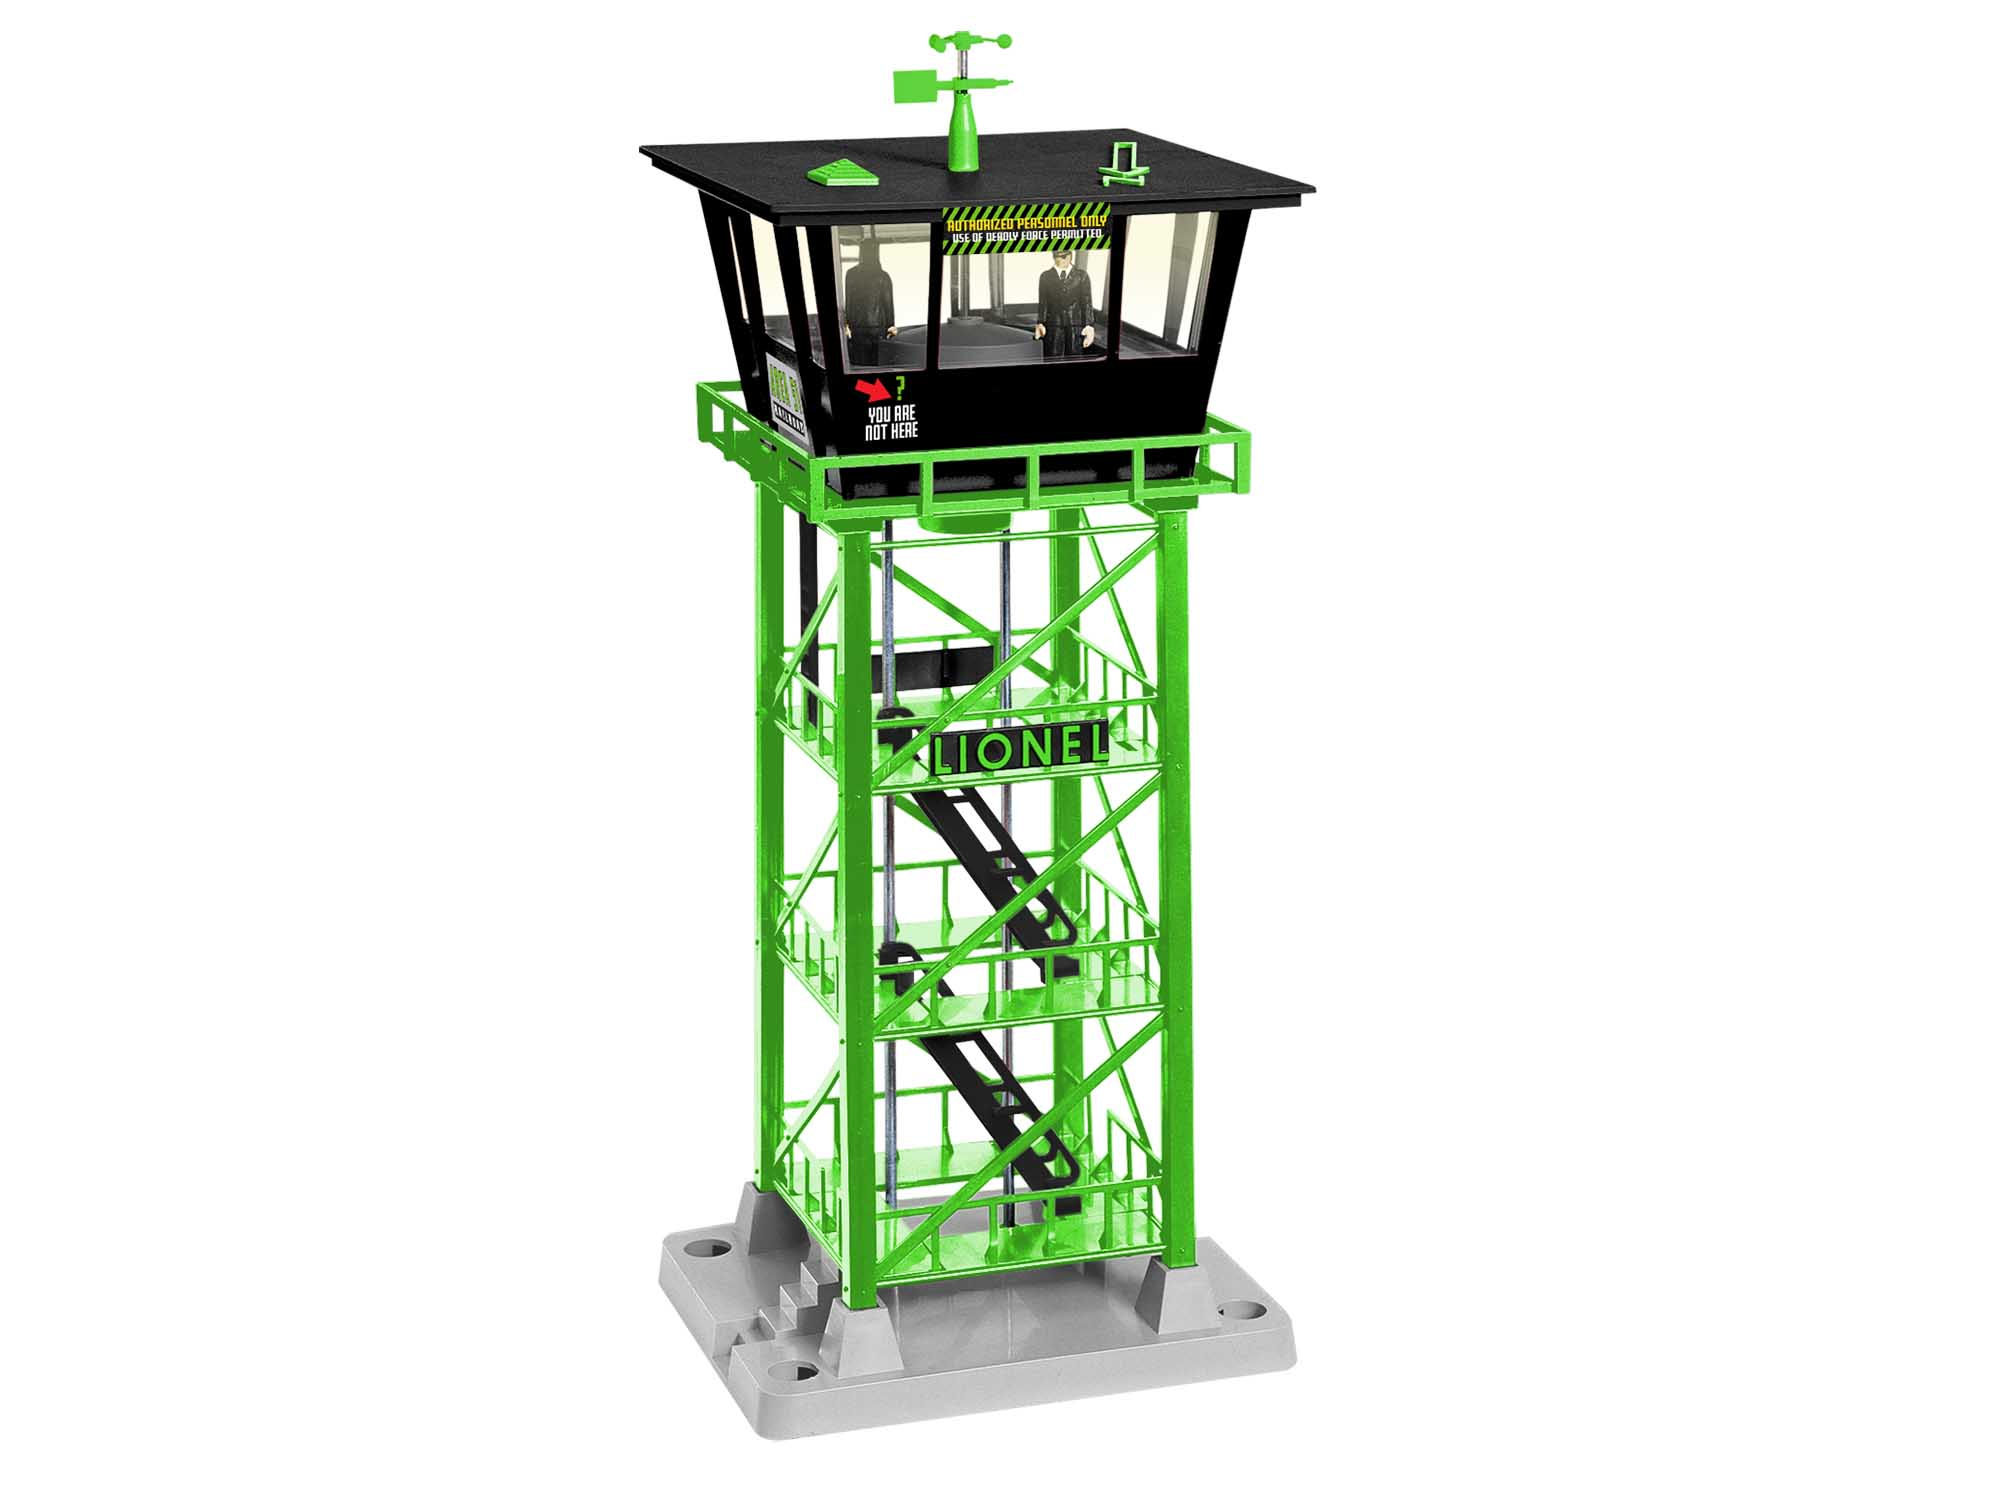 Lionel 2029200 Search Tower Area 51